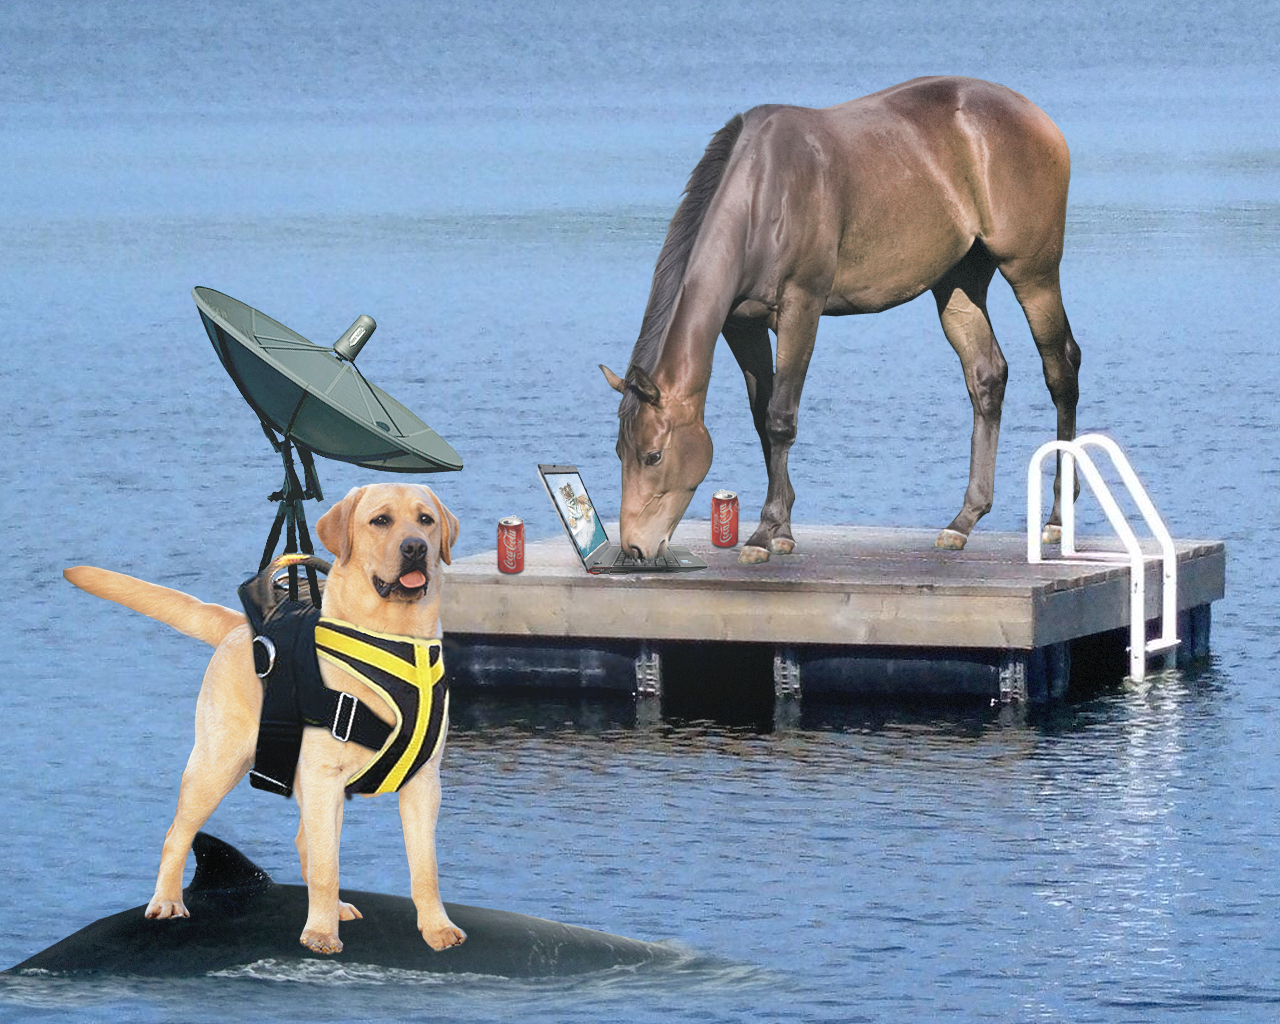 Wi-fi Dog Provides Internet For Stranded Horse